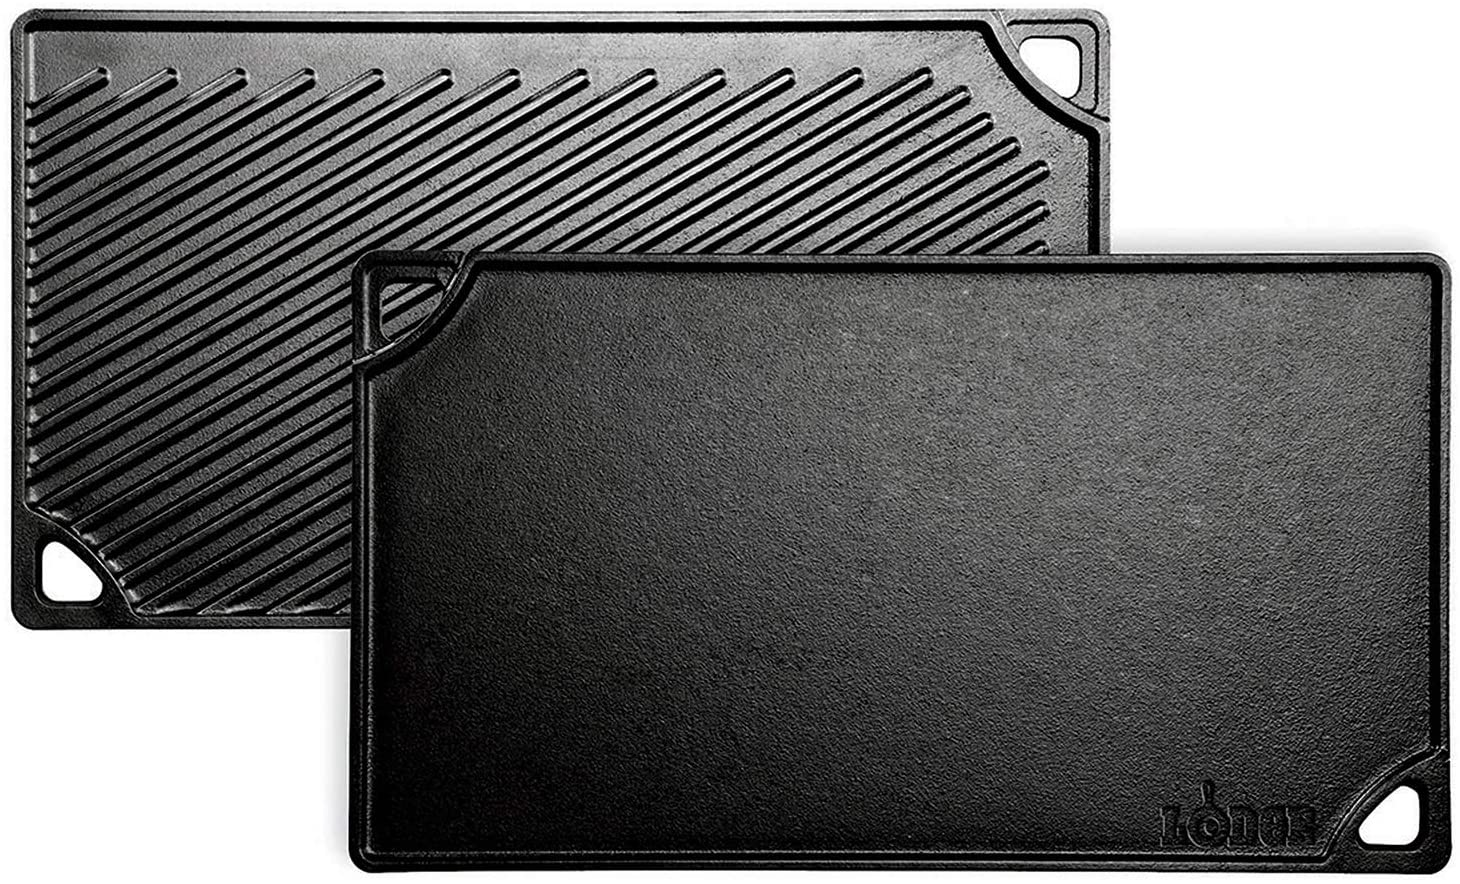 Lodge Pre-Seasoned Cast Iron Reversible Grill/Griddle, 16.75 In, Black: Kitchen & Dining